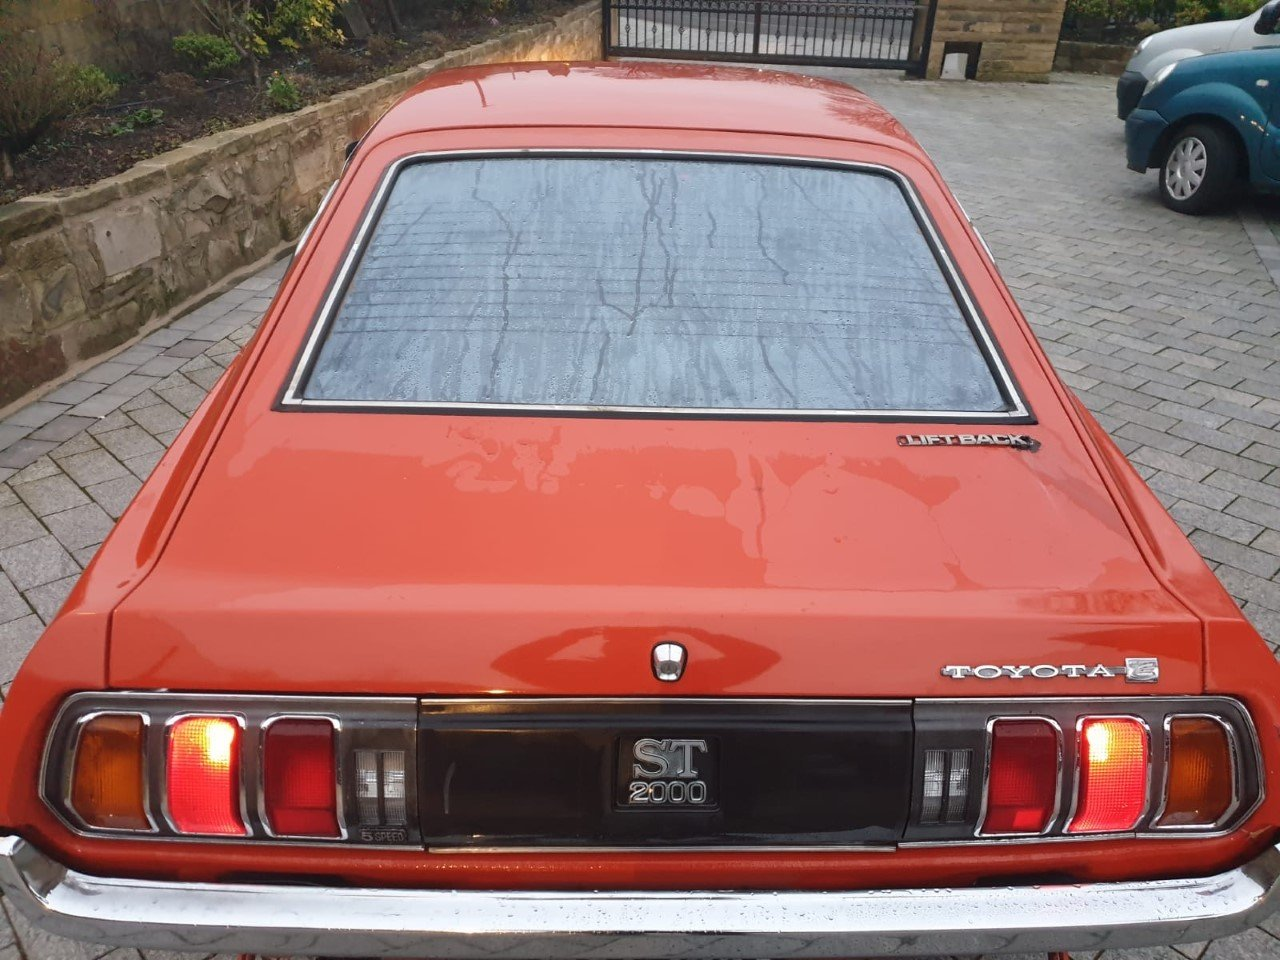 1978 Toyota celica ra28 1 owner from new uk car SOLD (picture 4 of 6)